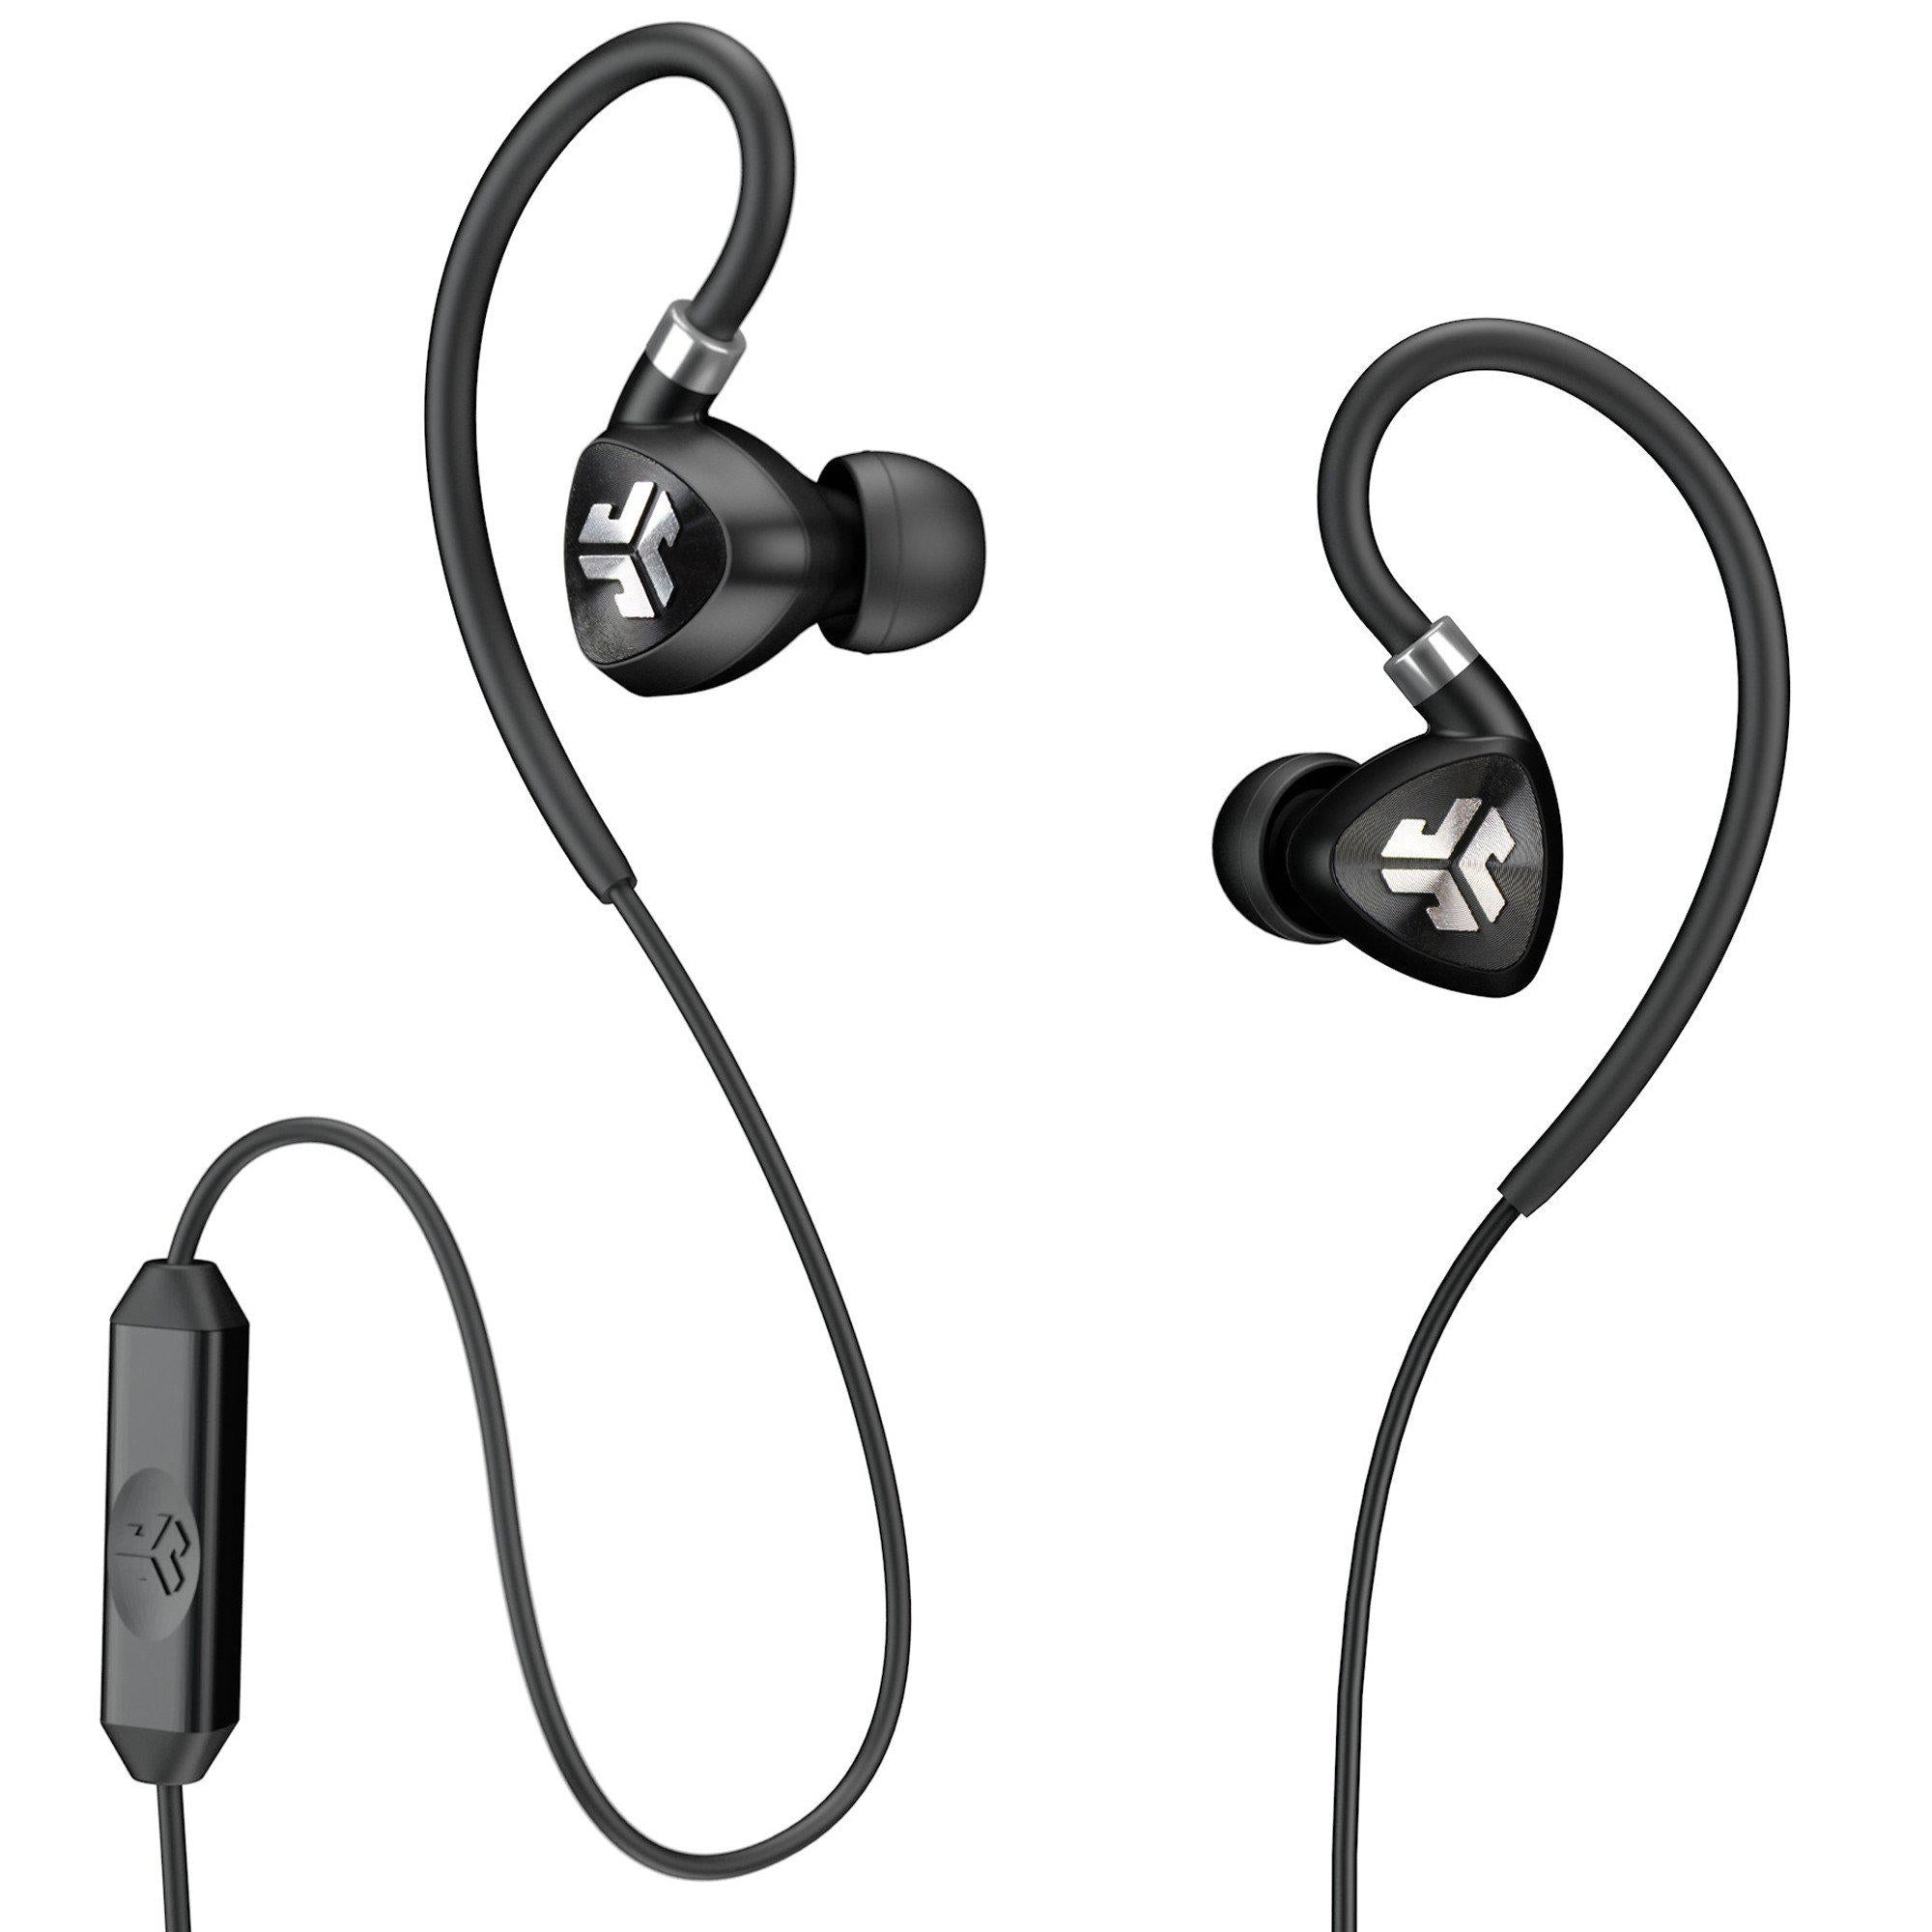 JLAB FIT 2.0 SPORT EARBUDS (BLACK)